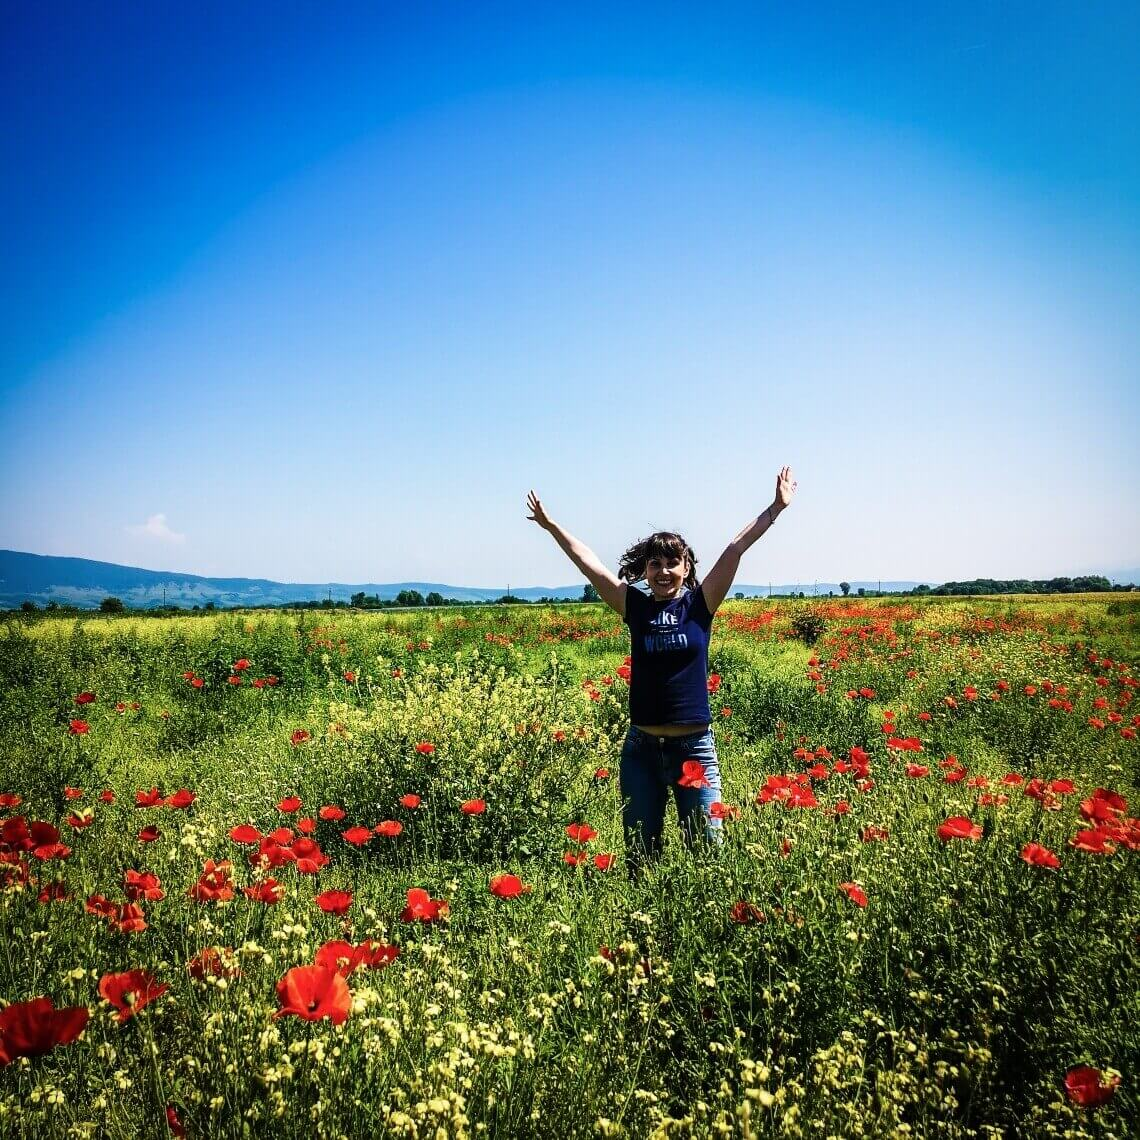 Girl jumping in a field of poppies